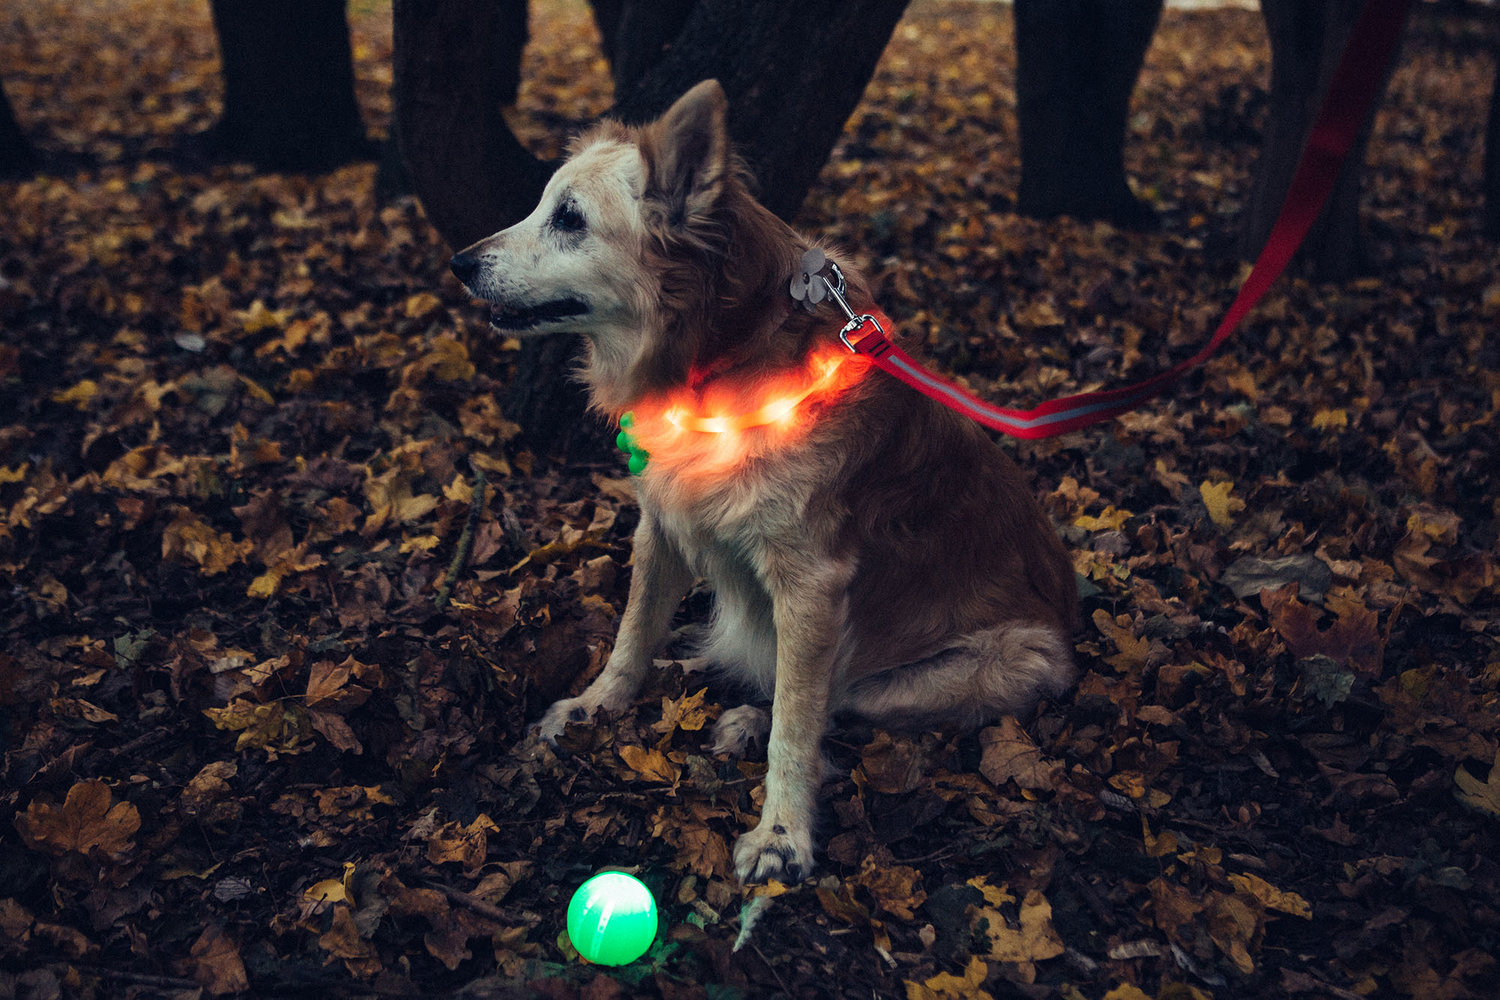 Canine editor Pippa wears the LED collar and the green blinking bone, and her normal collar is decorated with the Hiro+Wolf reflective flower. She ignores the LED ball.